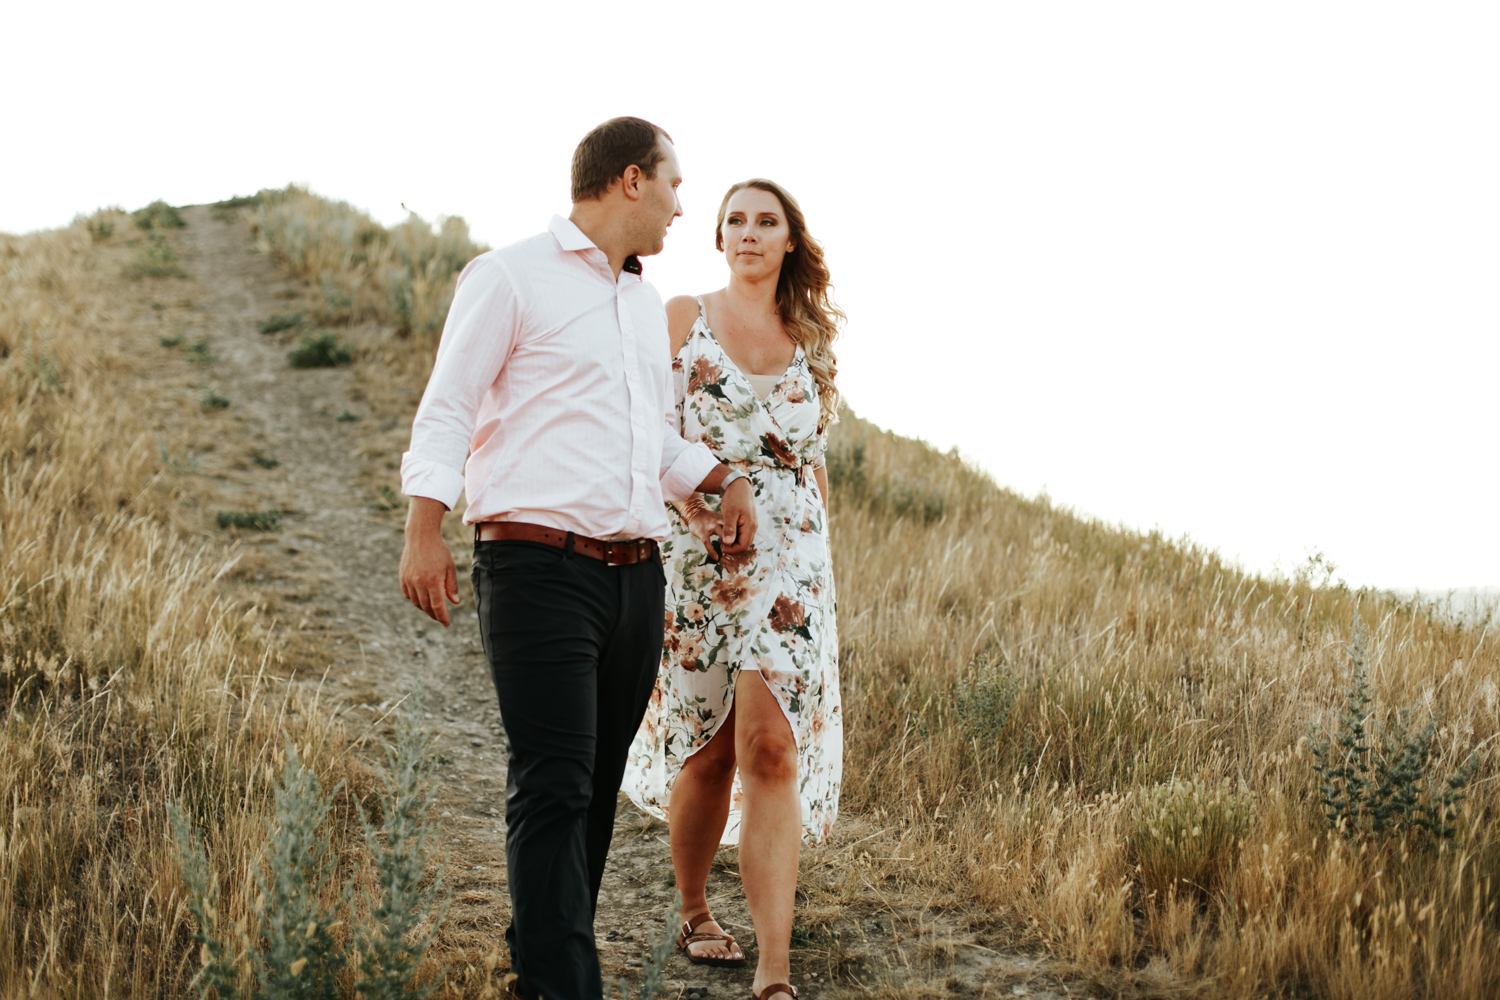 lethbridge-wedding-photographer-love-and-be-loved-photography-katie-kelli-engagement-picture-image-photo-42.jpg